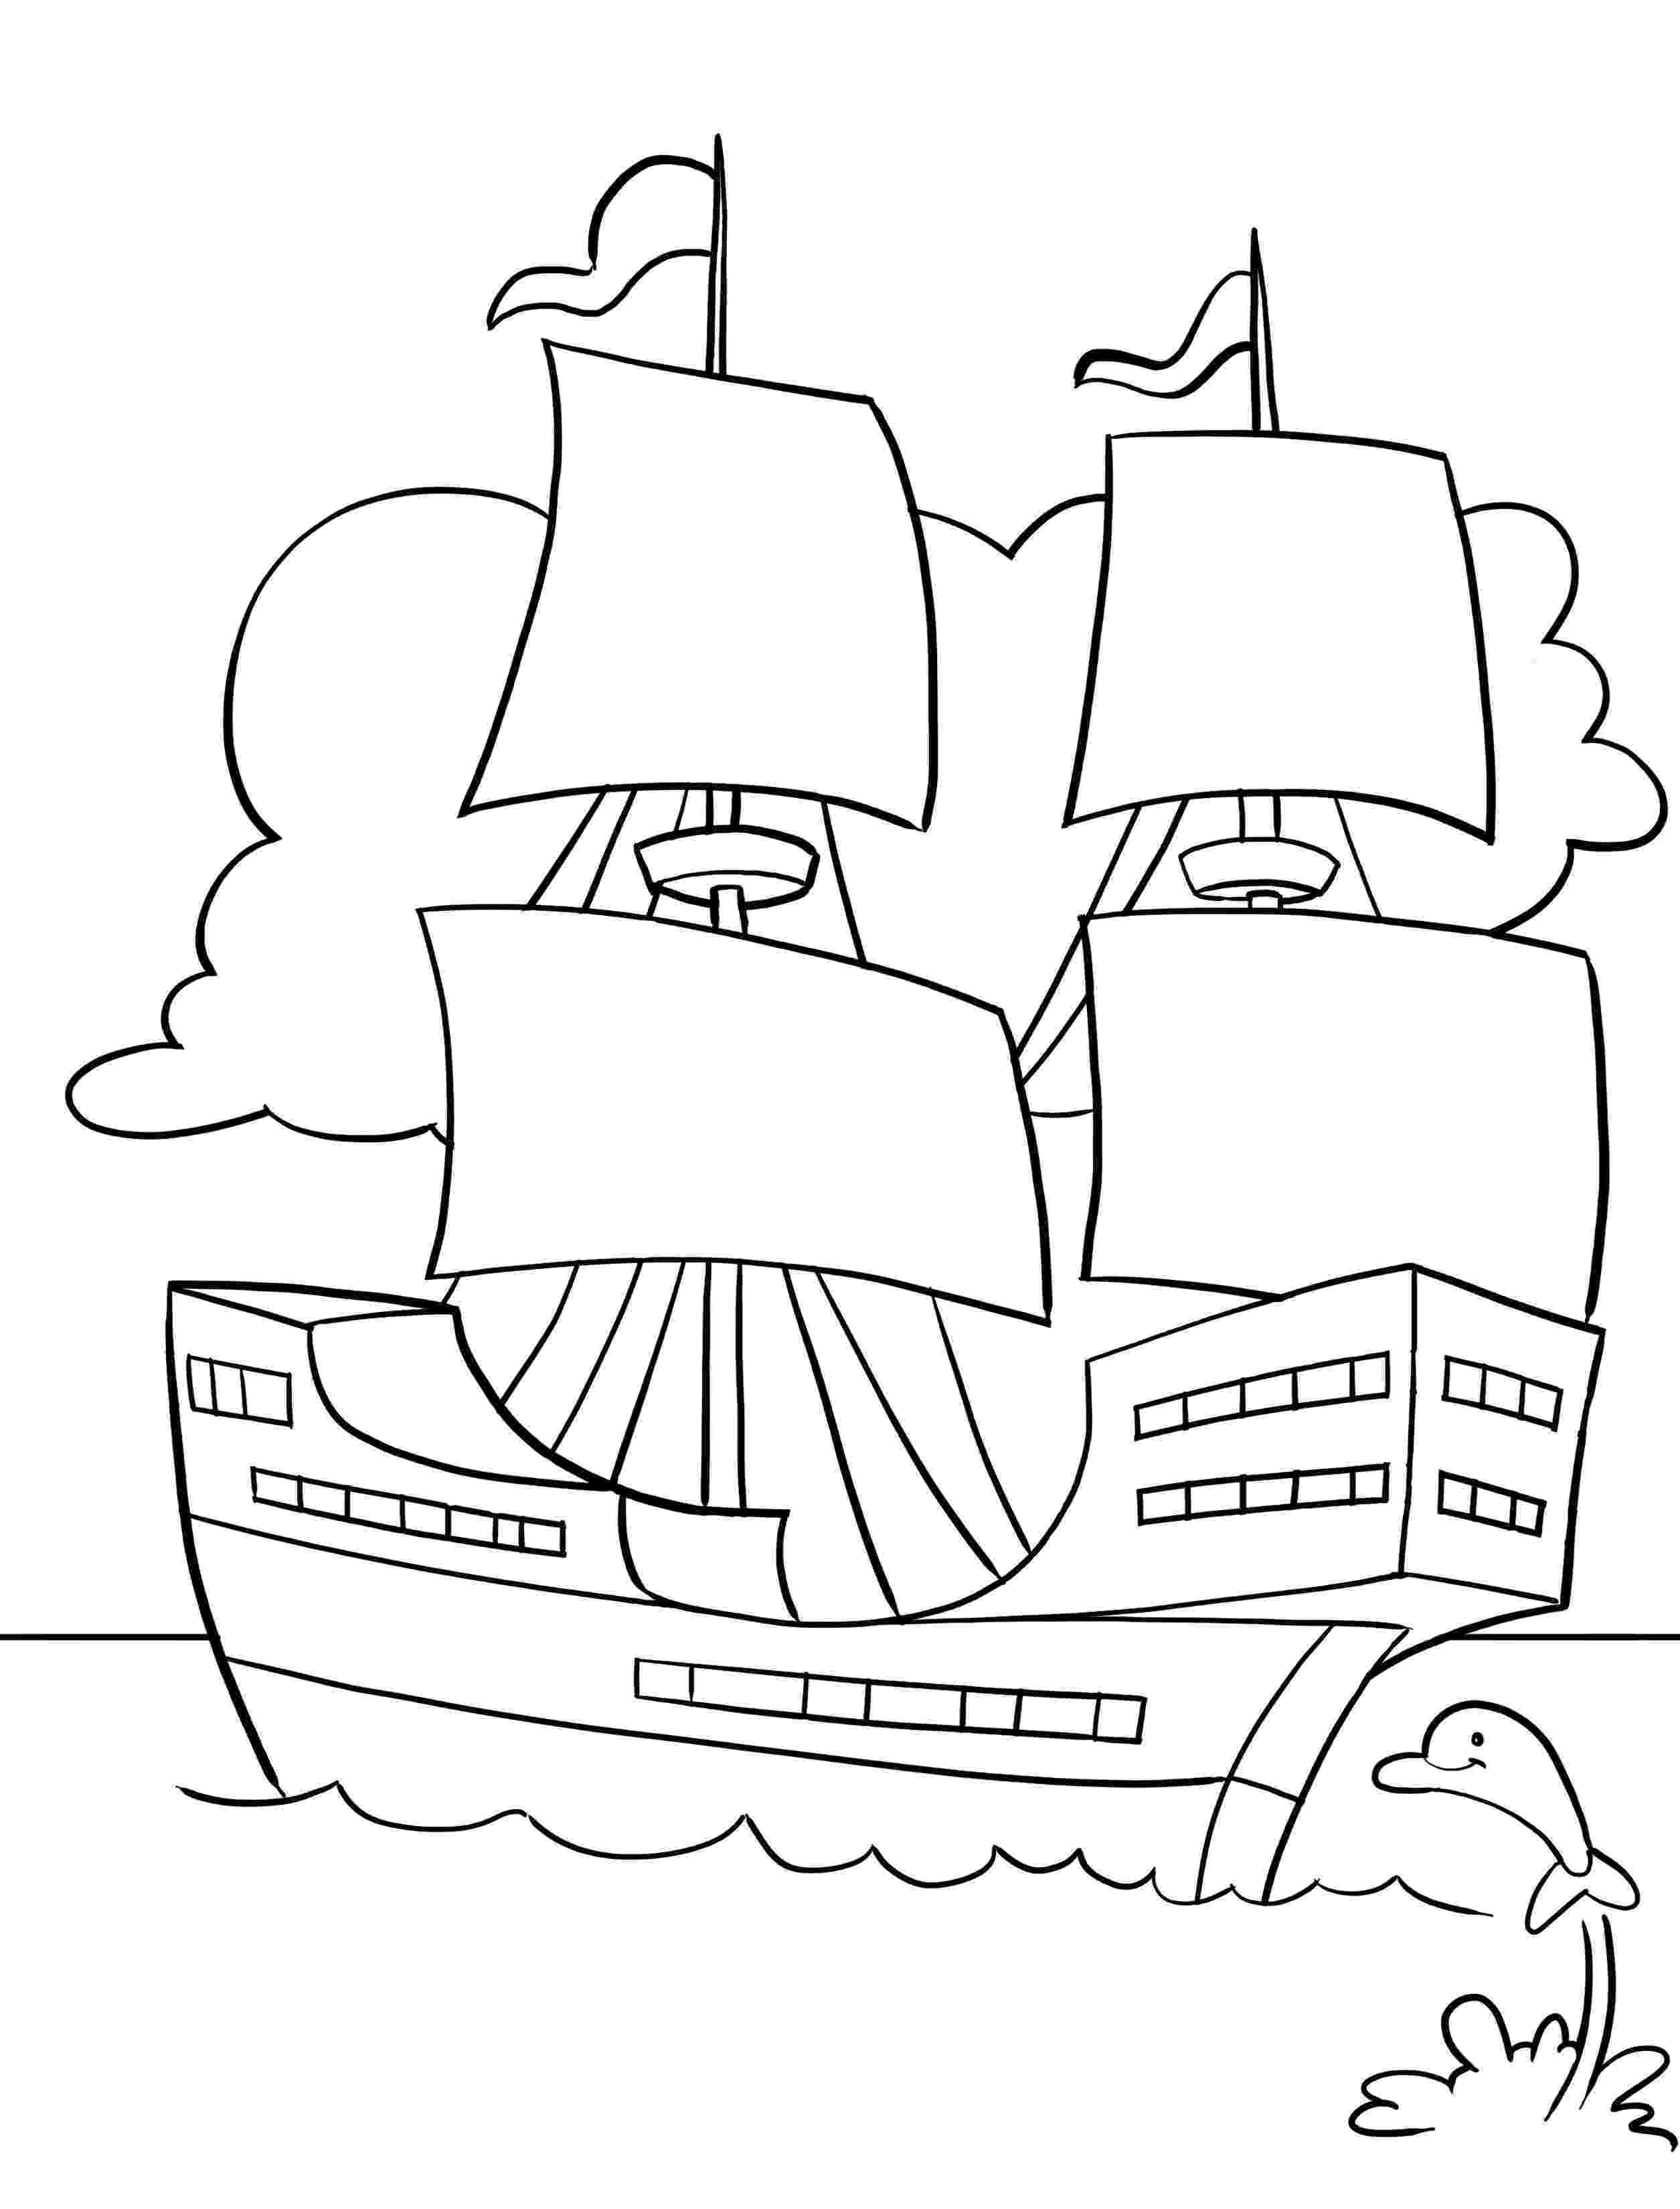 mayflower coloring page thanksgiving coloring page the mayflower page coloring mayflower